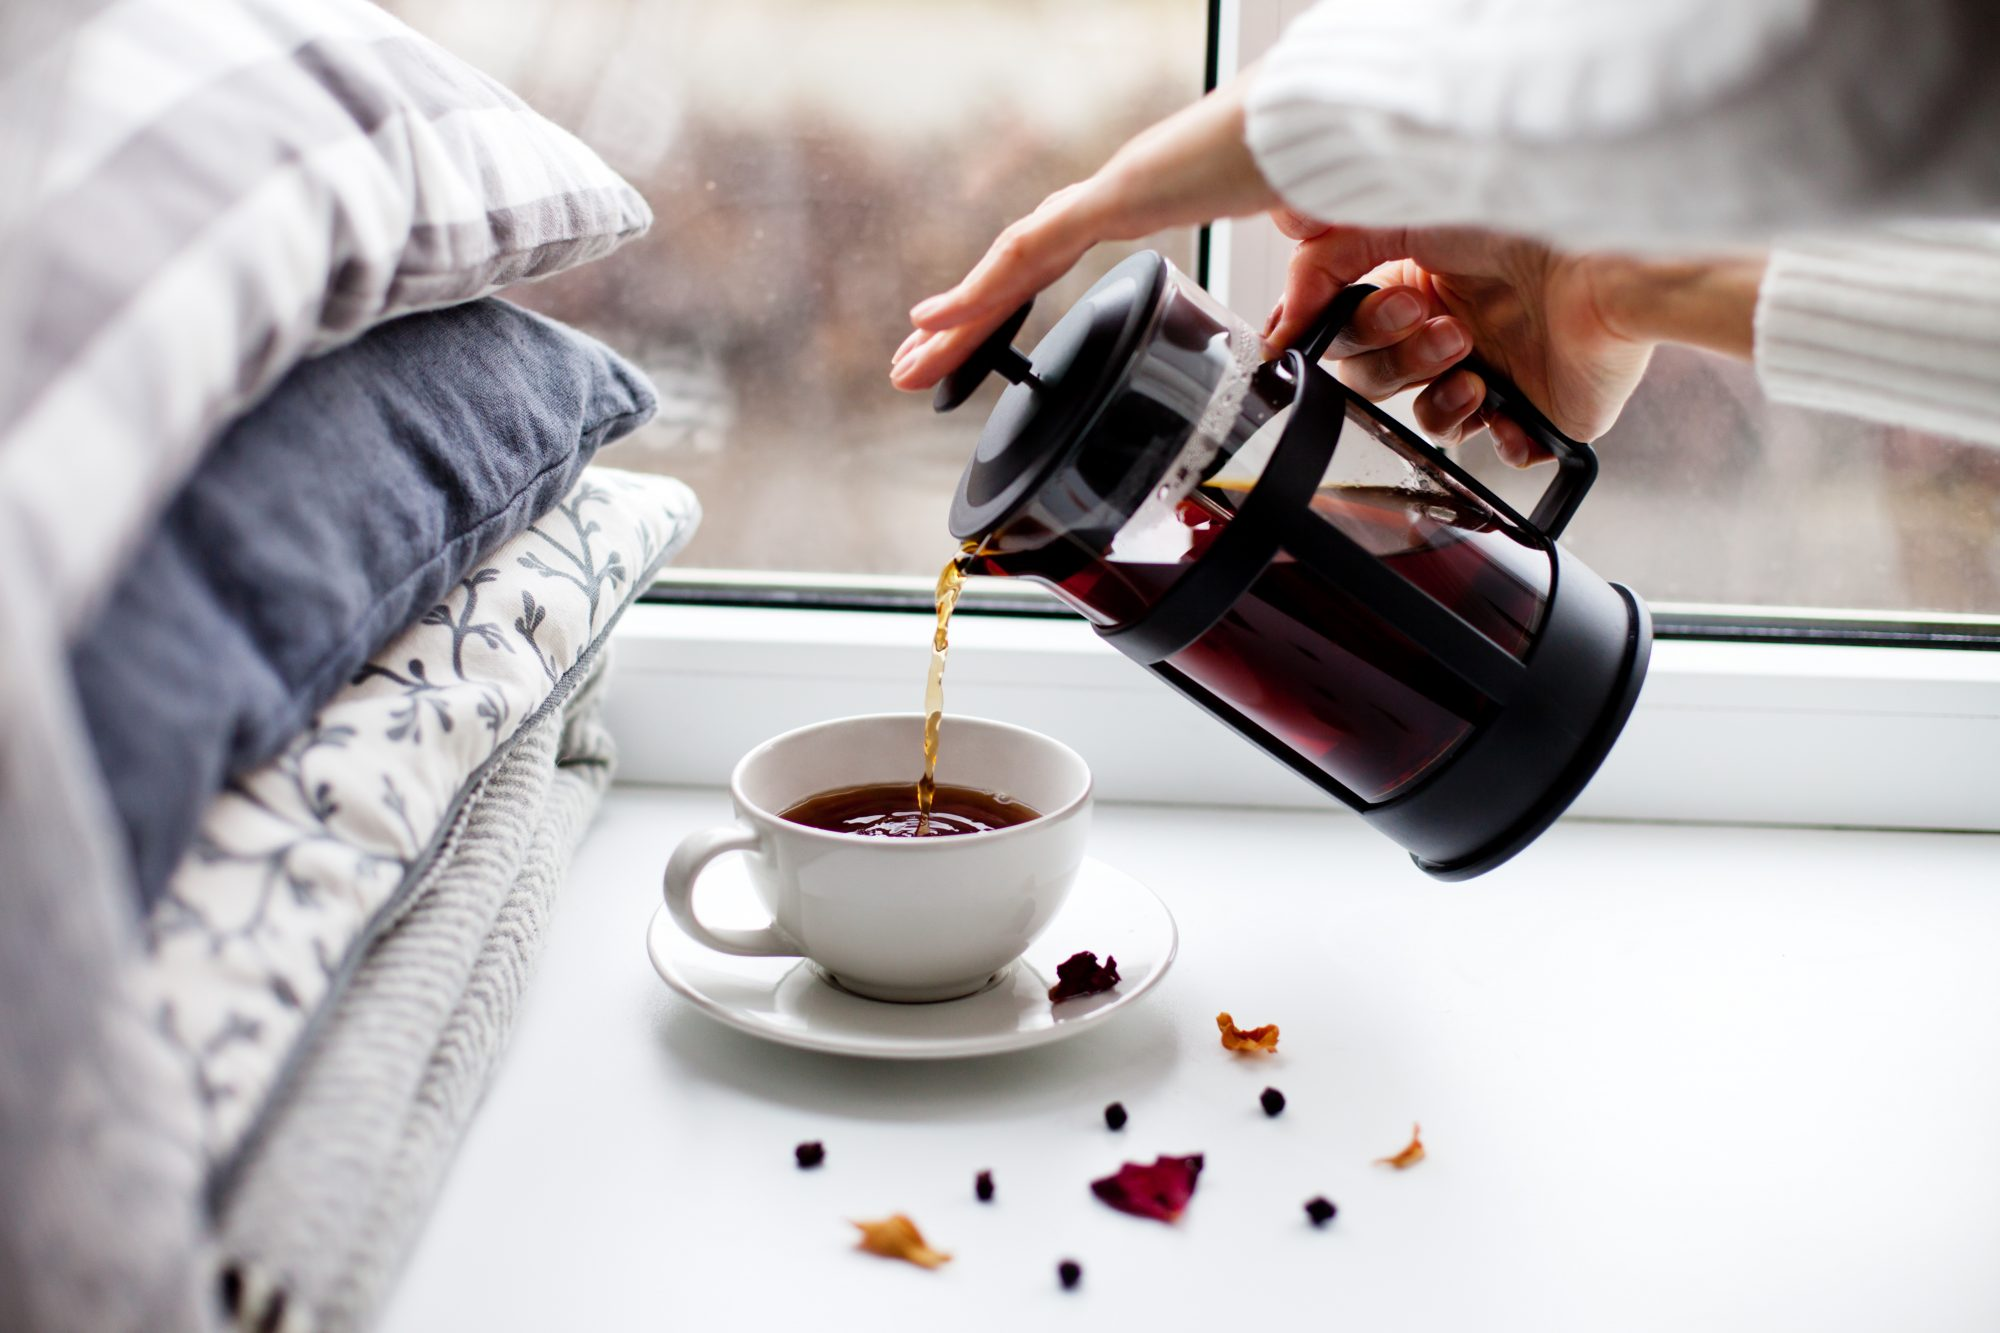 Pouring French Press Coffee In Cup